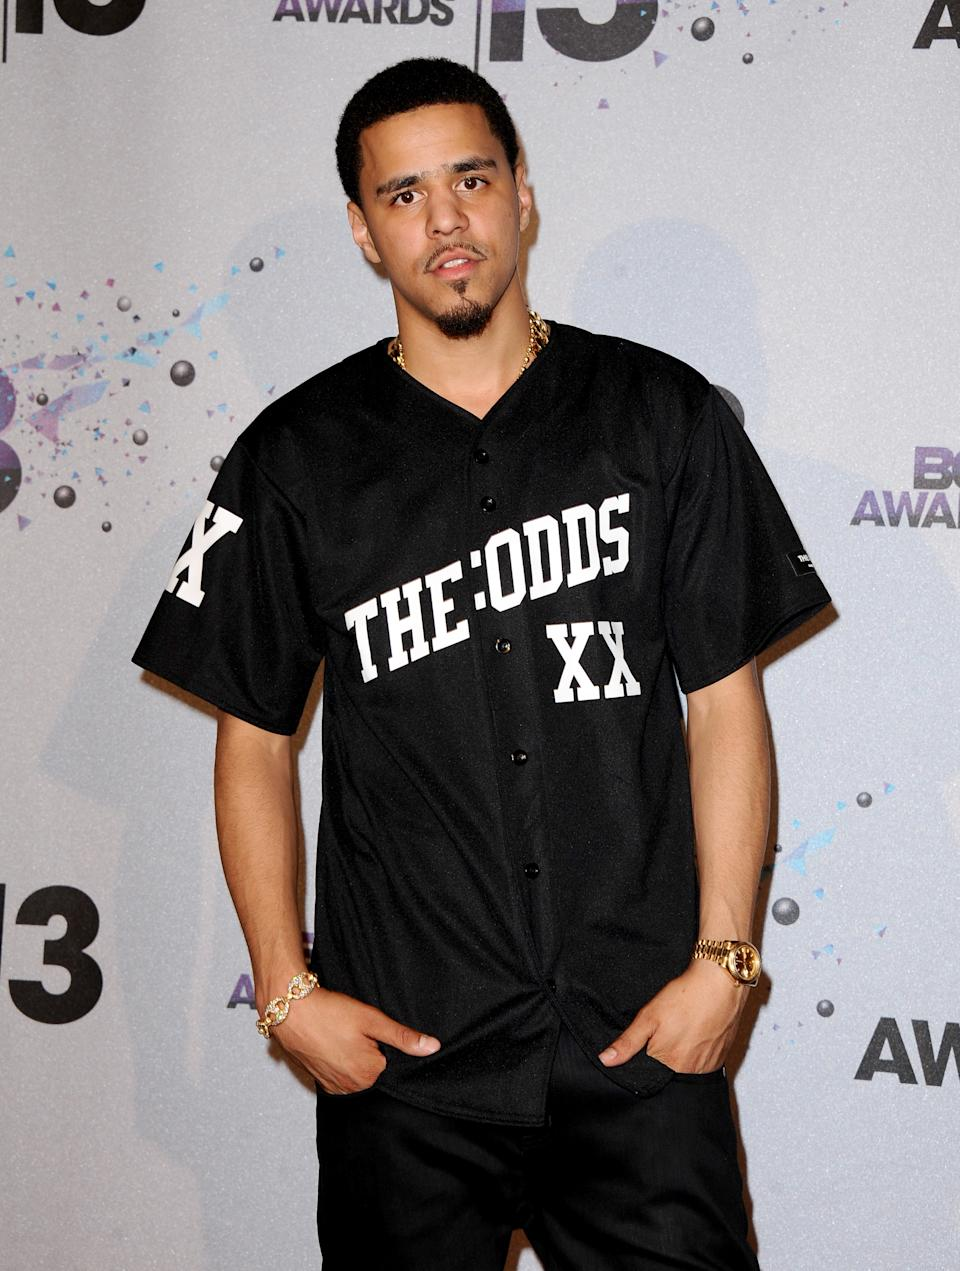 J. Cole poses backstage at the BET Awards at the Nokia Theatre on Sunday, June 30, 2013, in Los Angeles. (Photo by Scott Kirkland/Invision/AP)